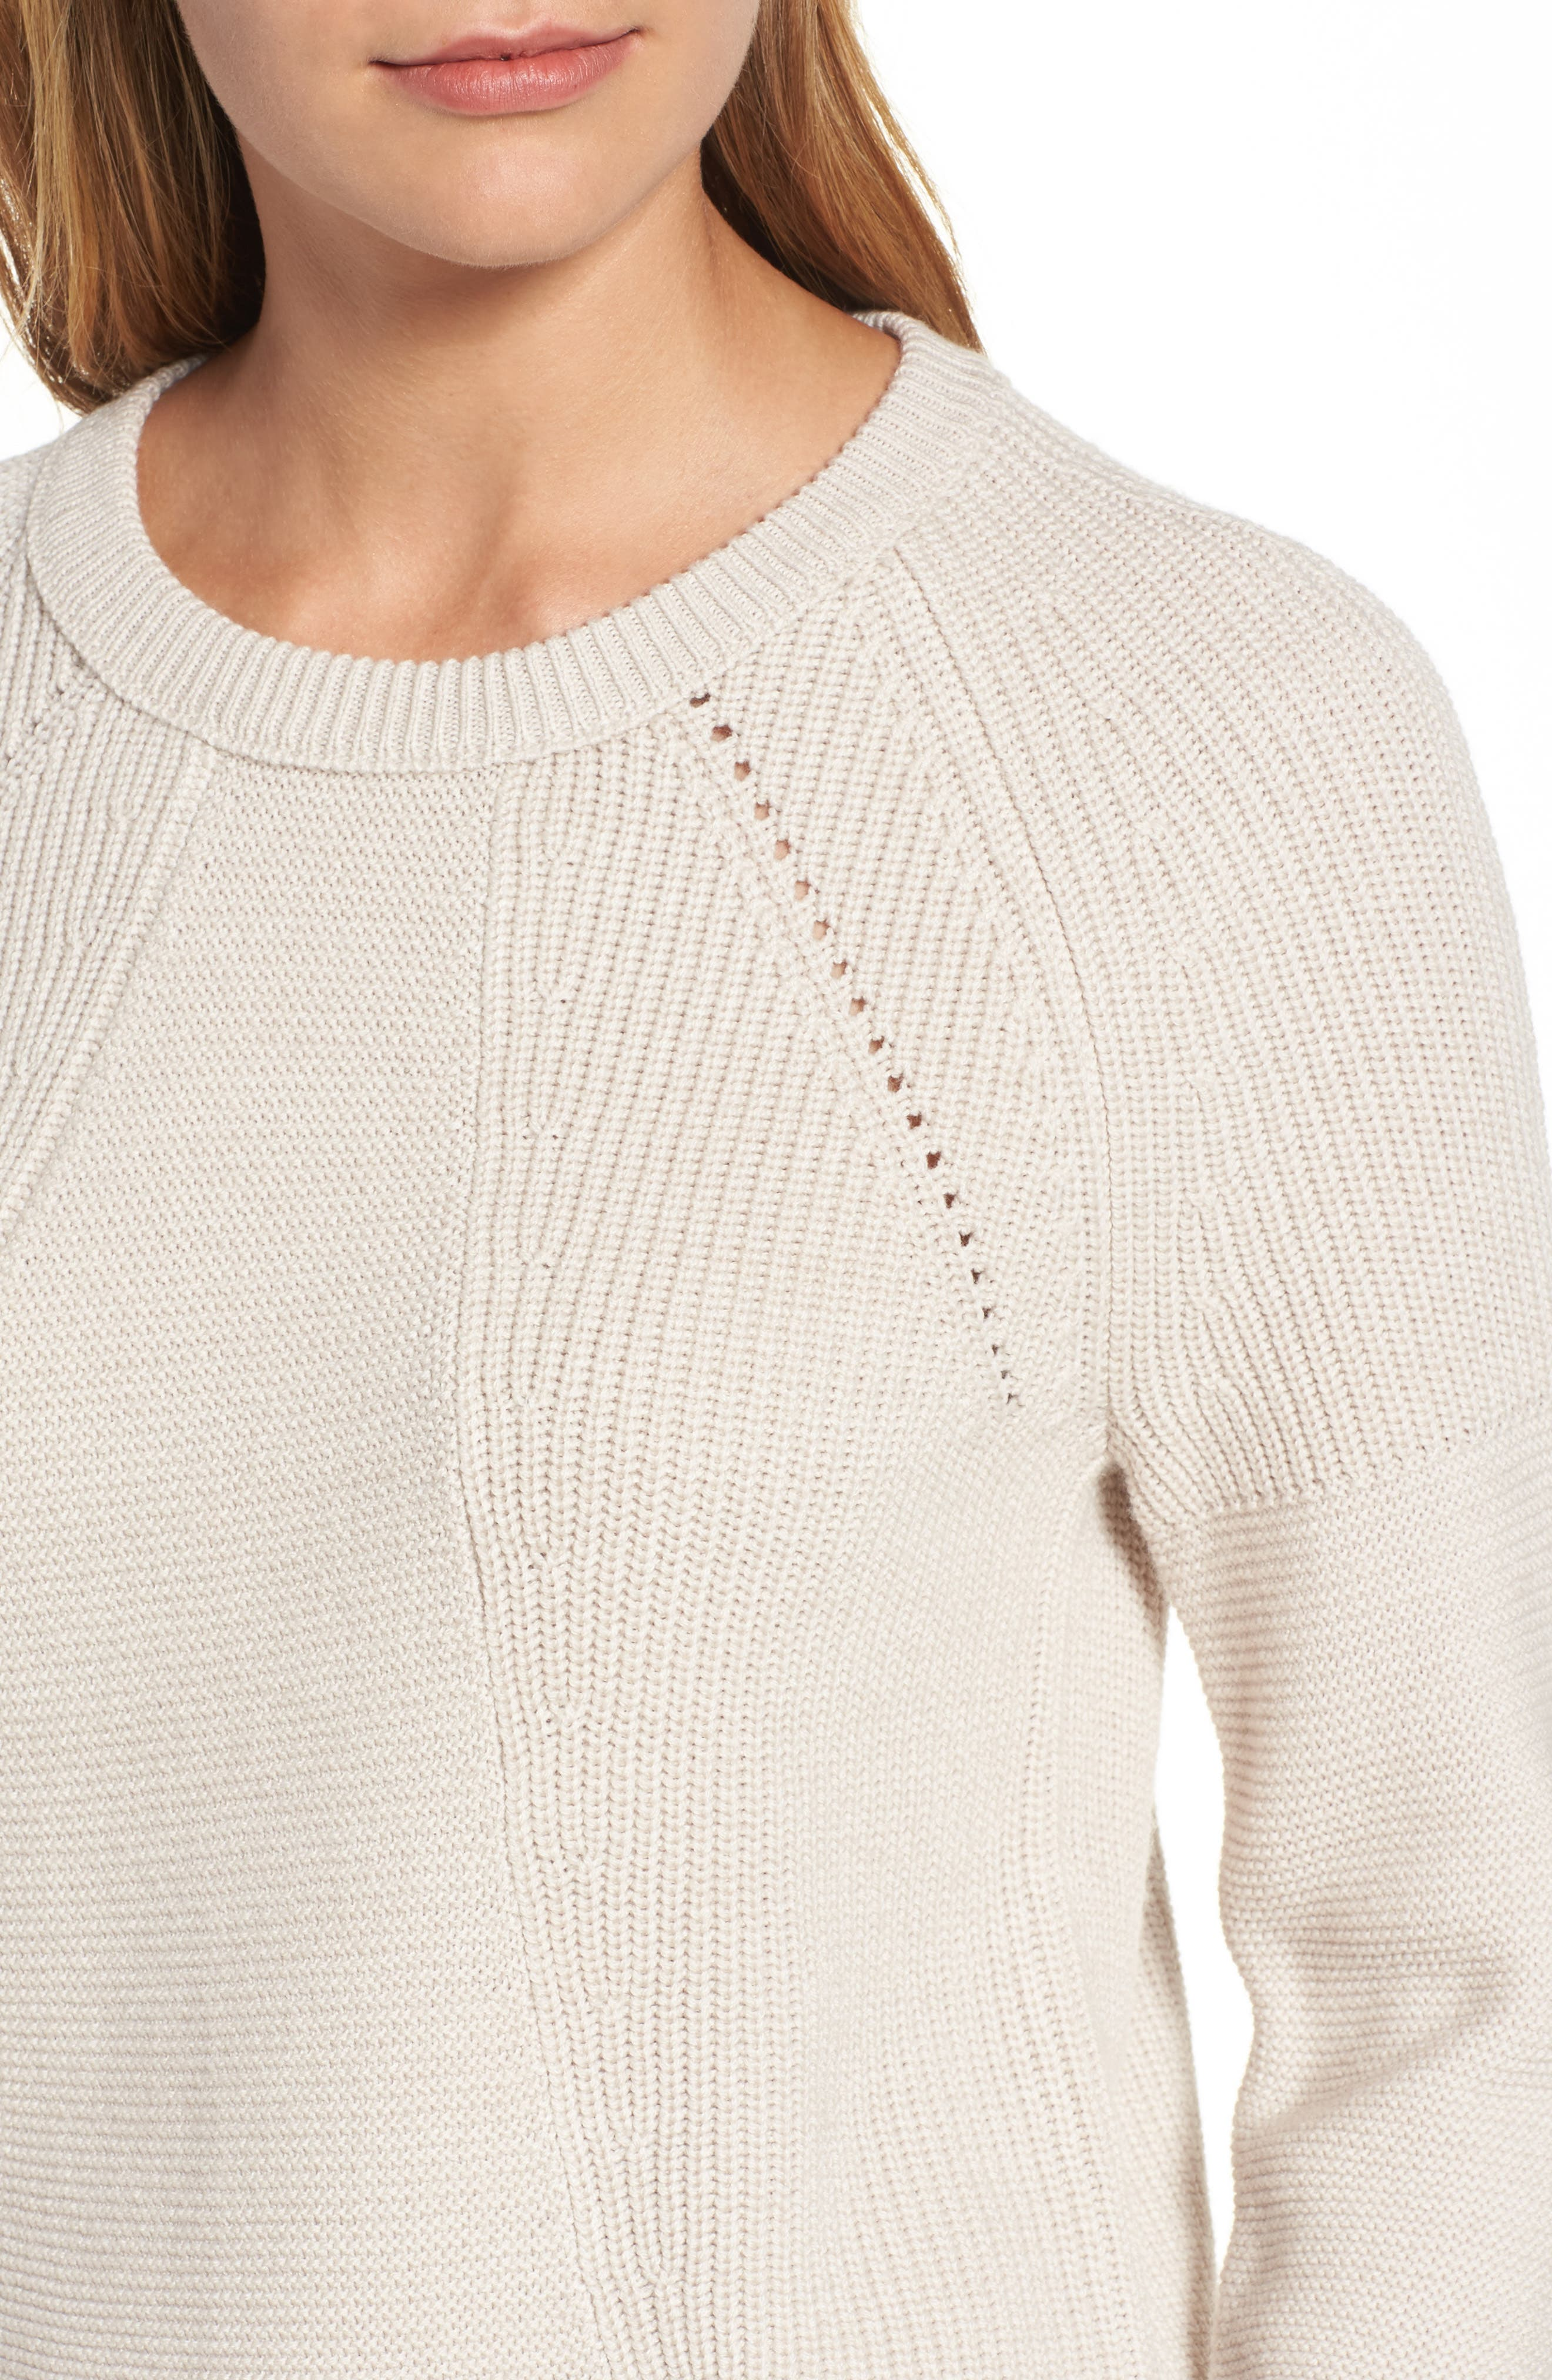 Engineered Stitch Sweater,                             Alternate thumbnail 4, color,                             251